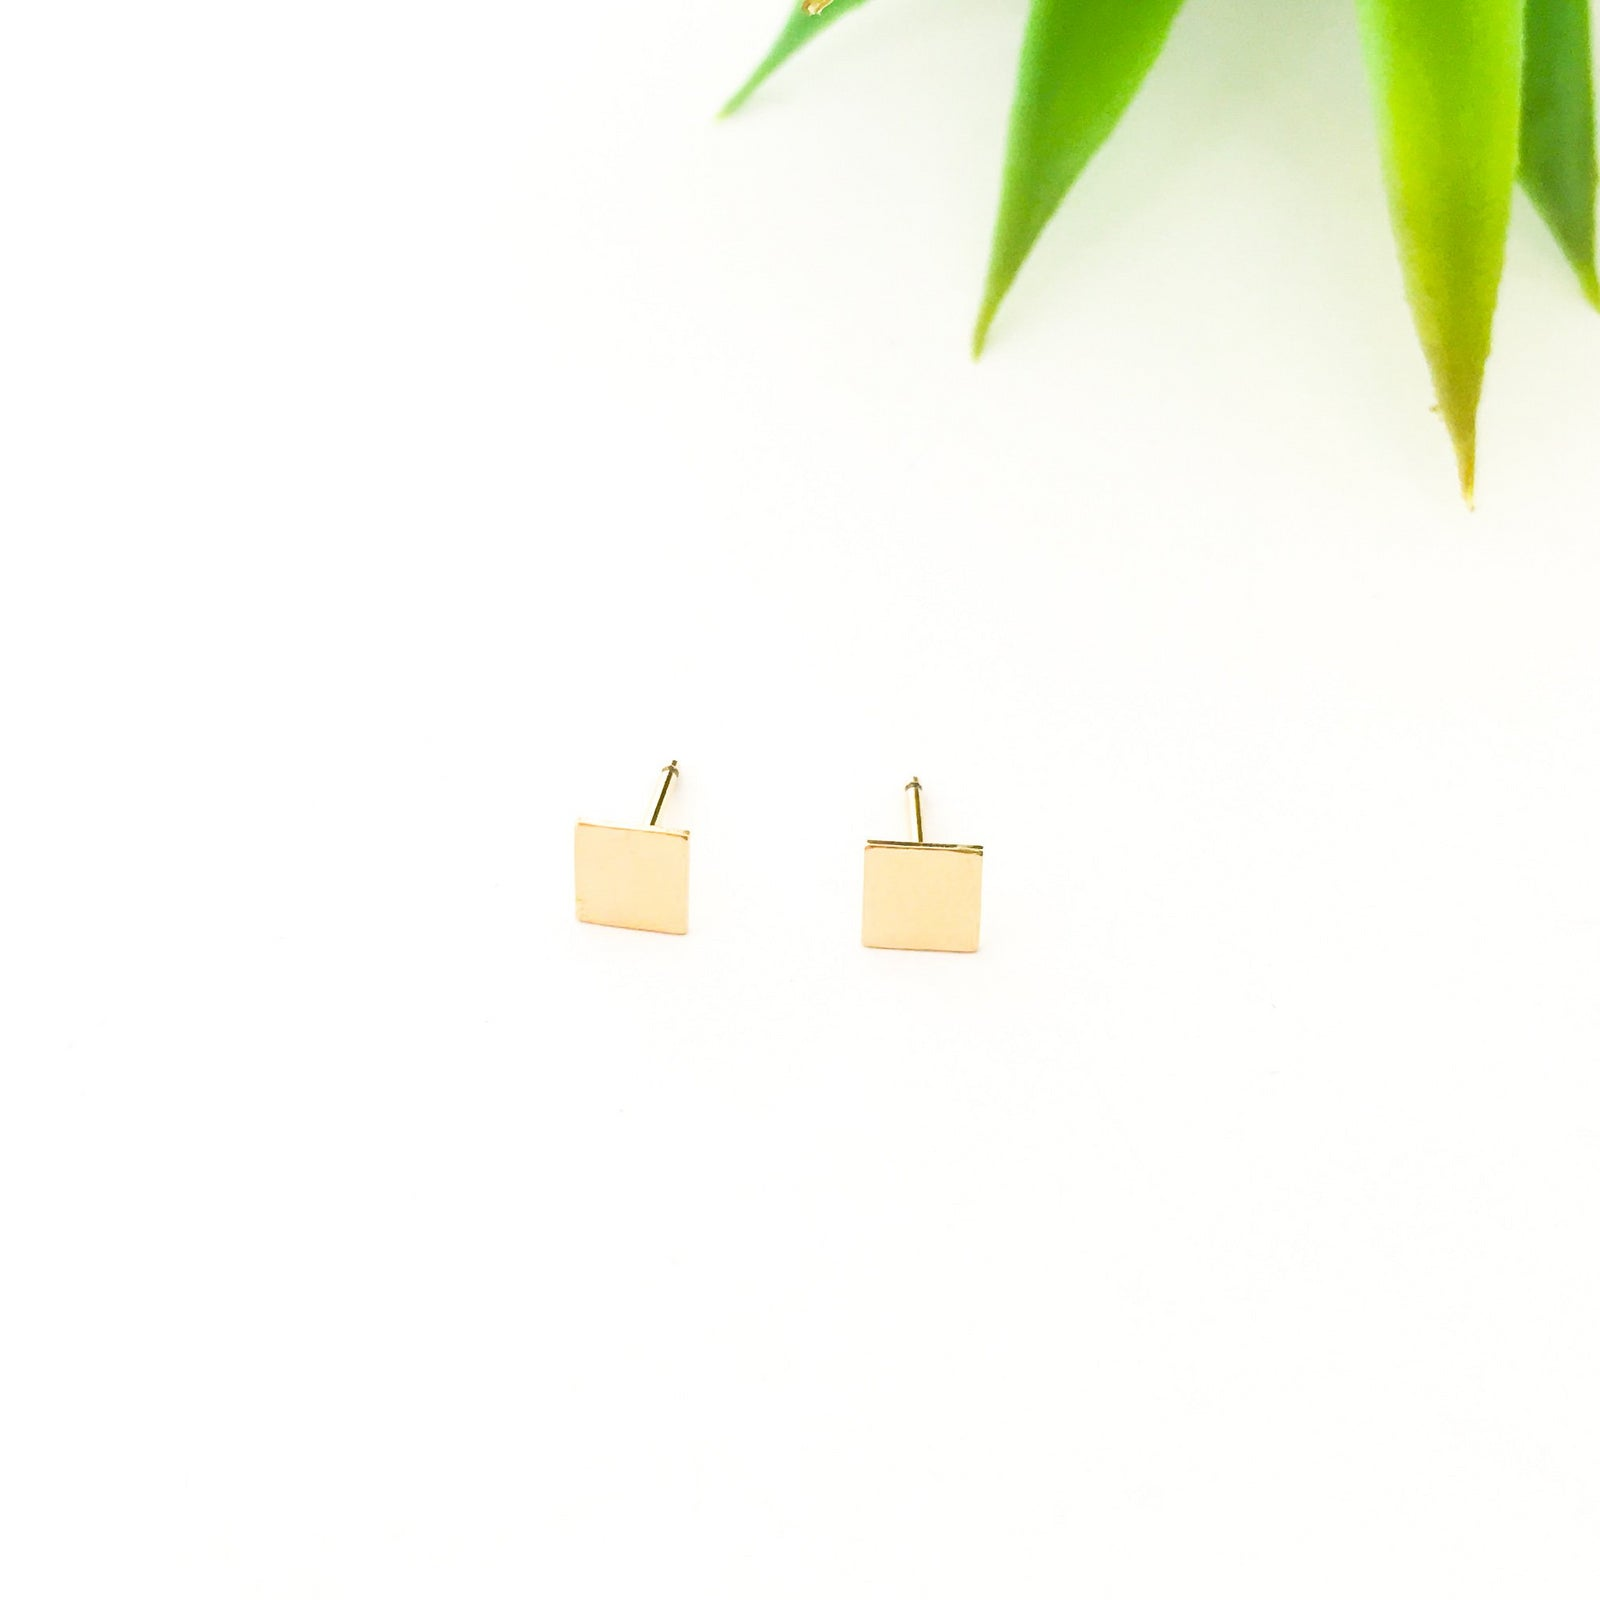 SQUARE STUD EARRINGS | 14K GOLD-FILLED